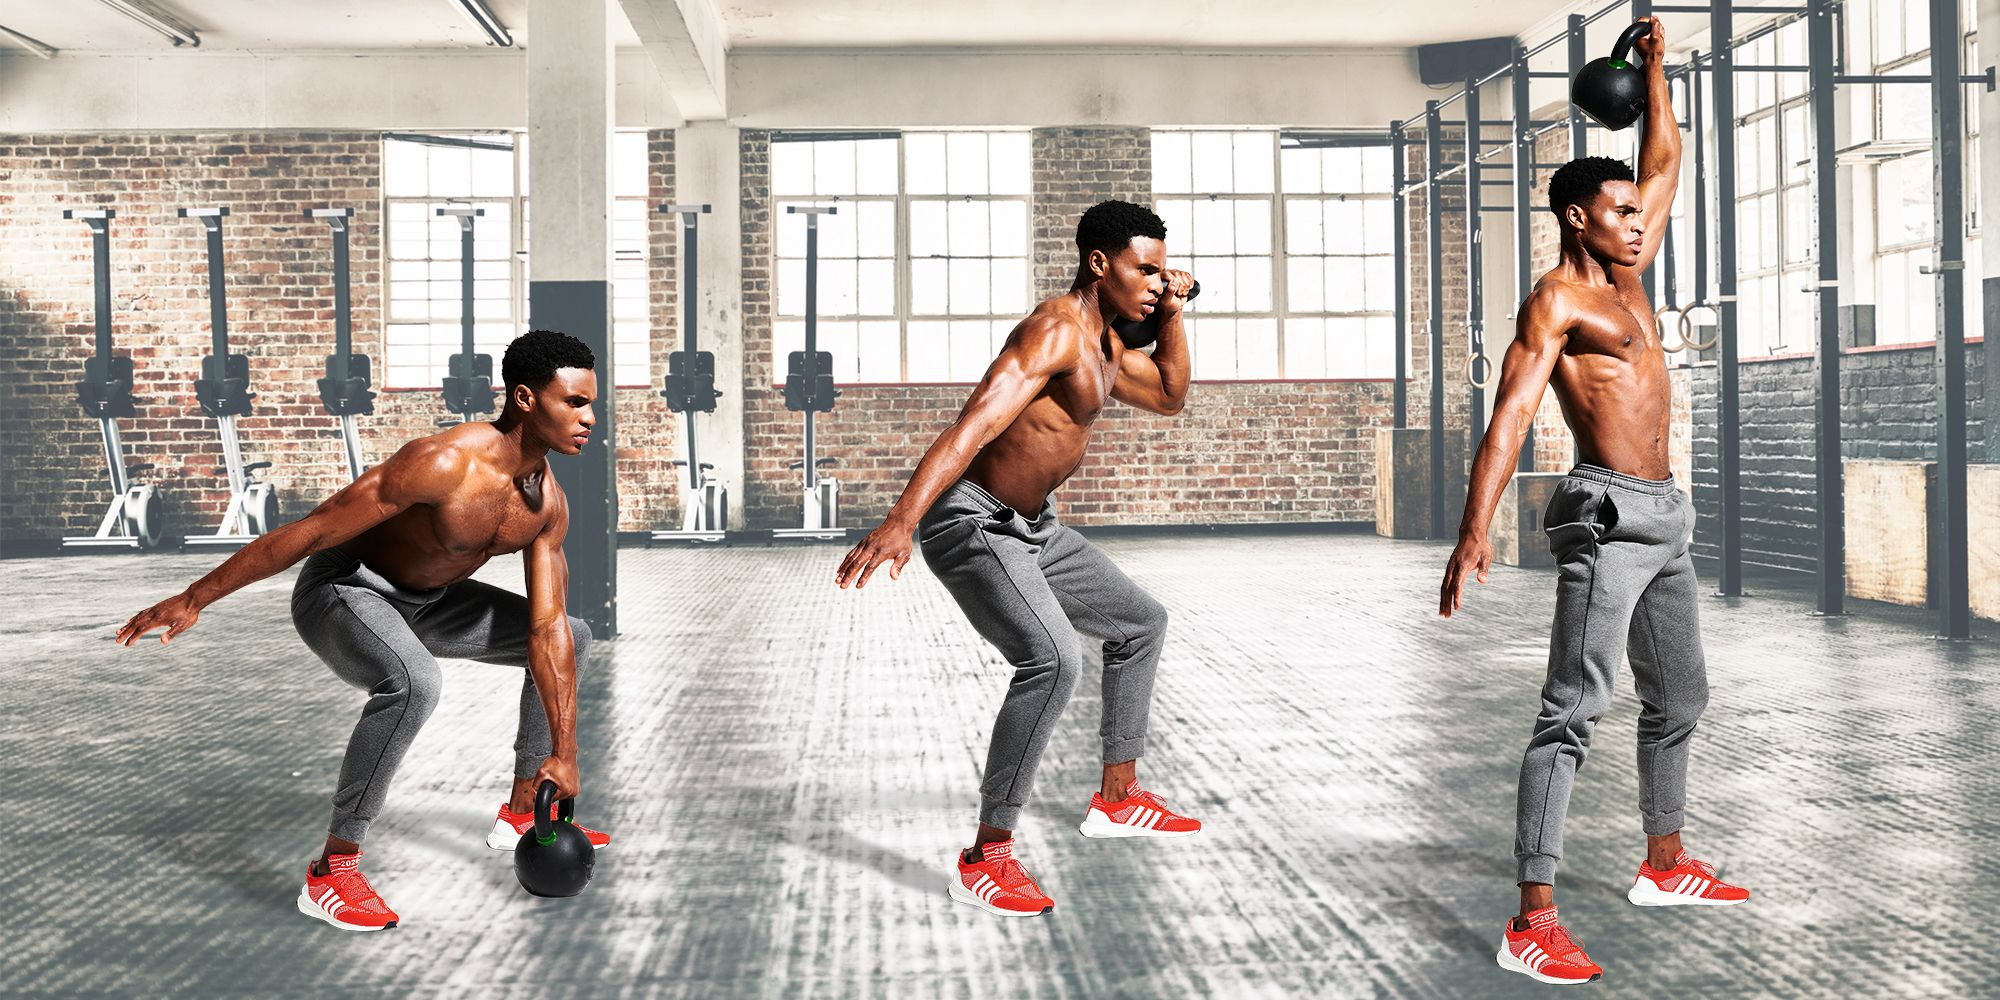 This 15-Minute, 6-Move Home Kettlebell Workout Is Perfect for a Gentle Return To Training